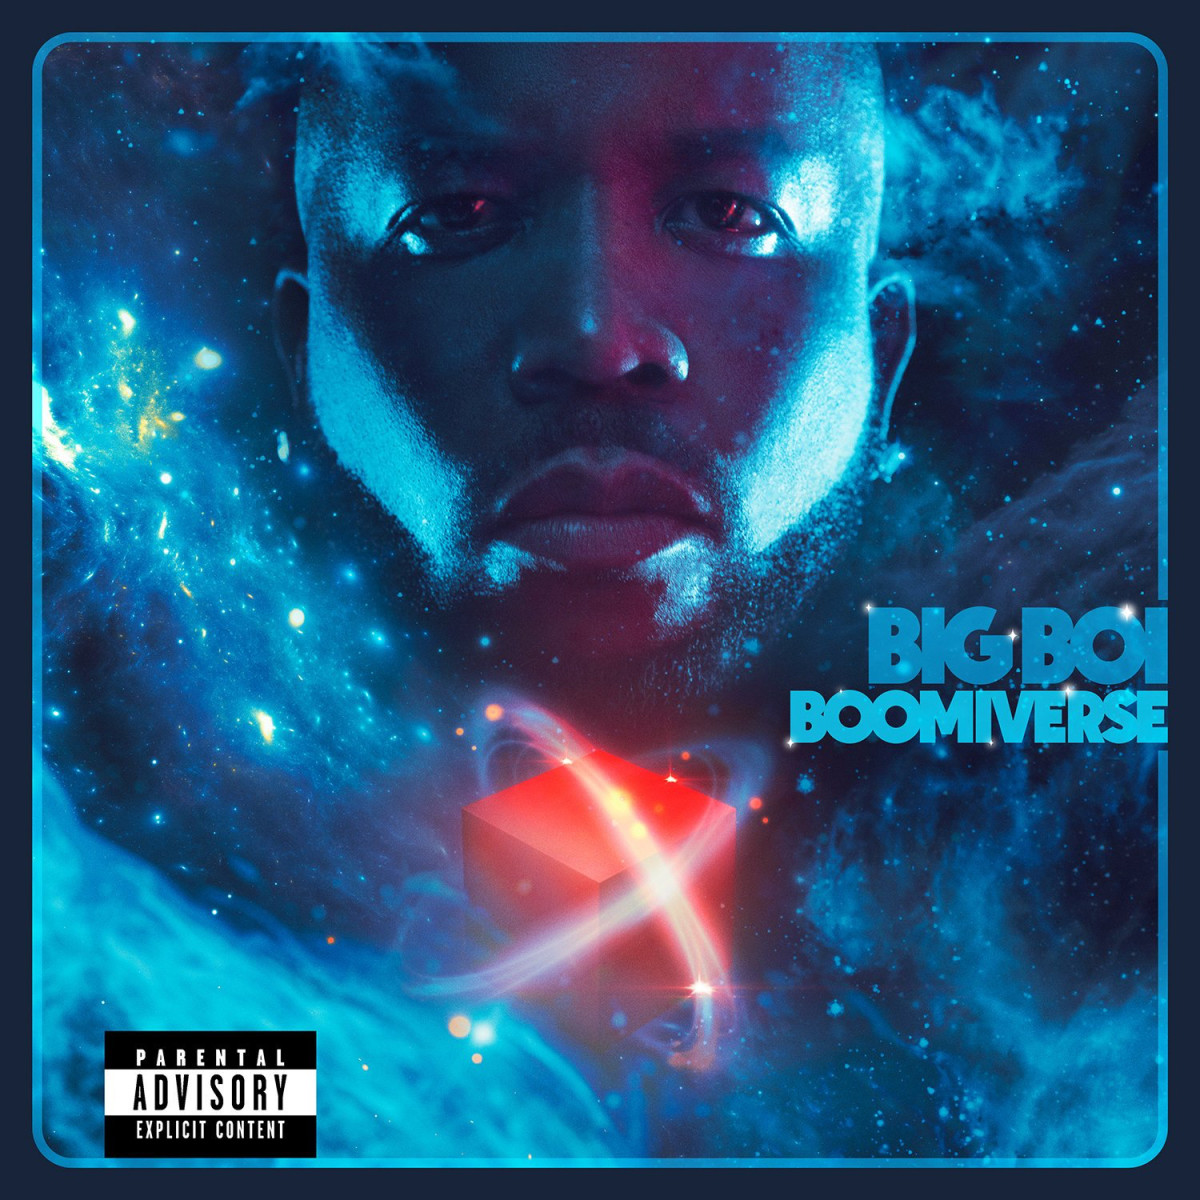 big-boi-boomiverse-cover